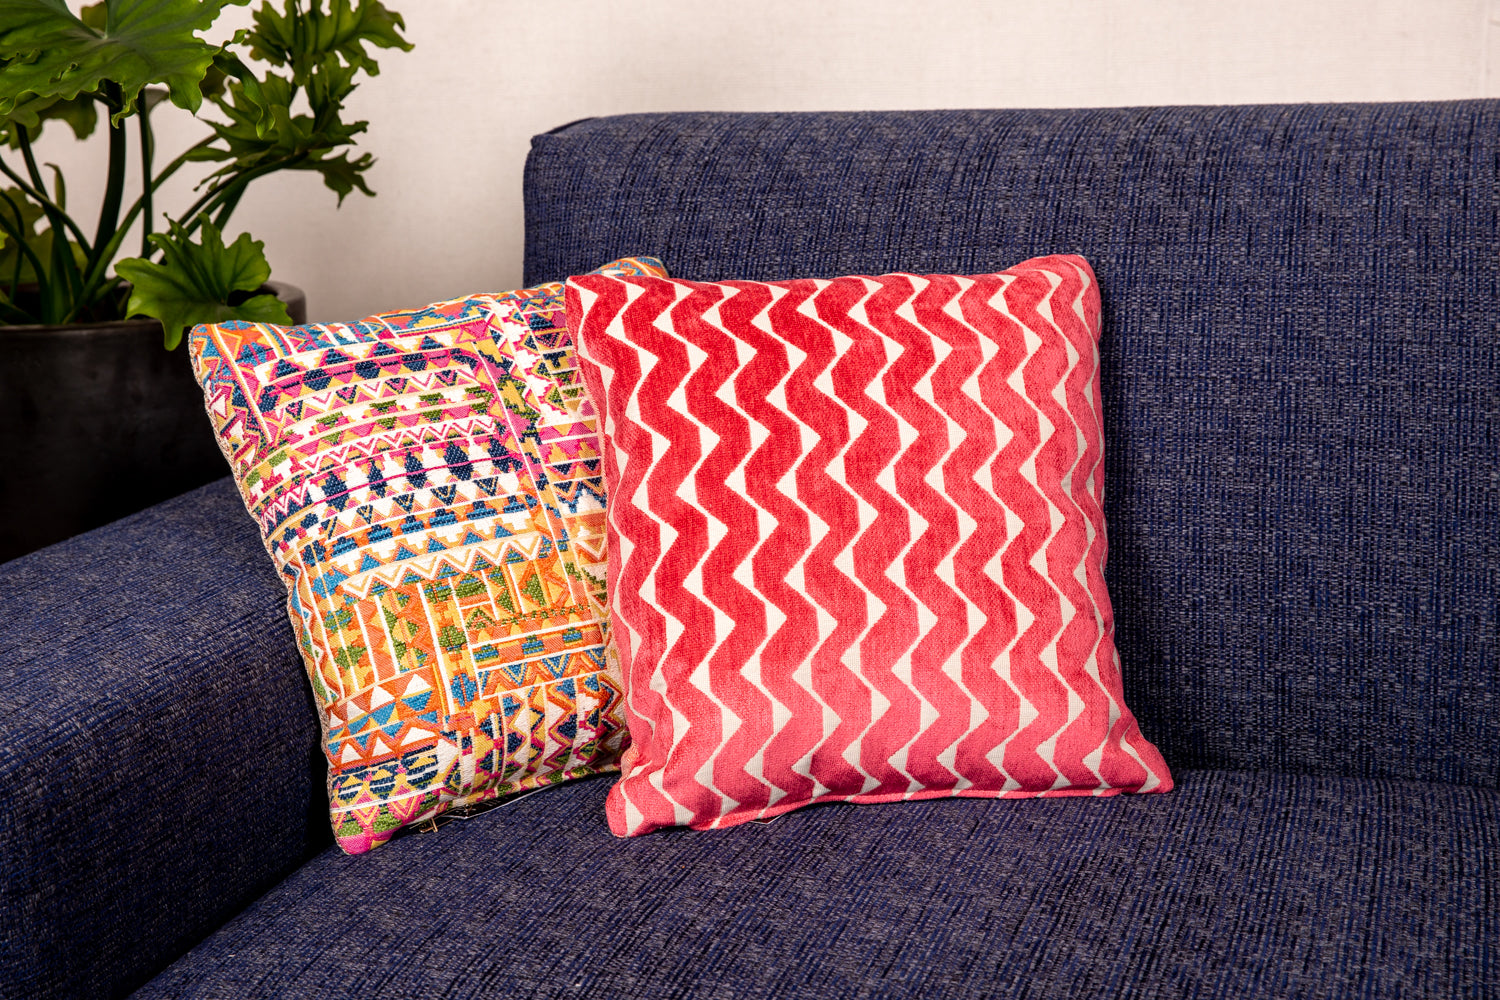 ffabb toss pillows, RADG & Maxwell fabrics, velvet small scale pattern